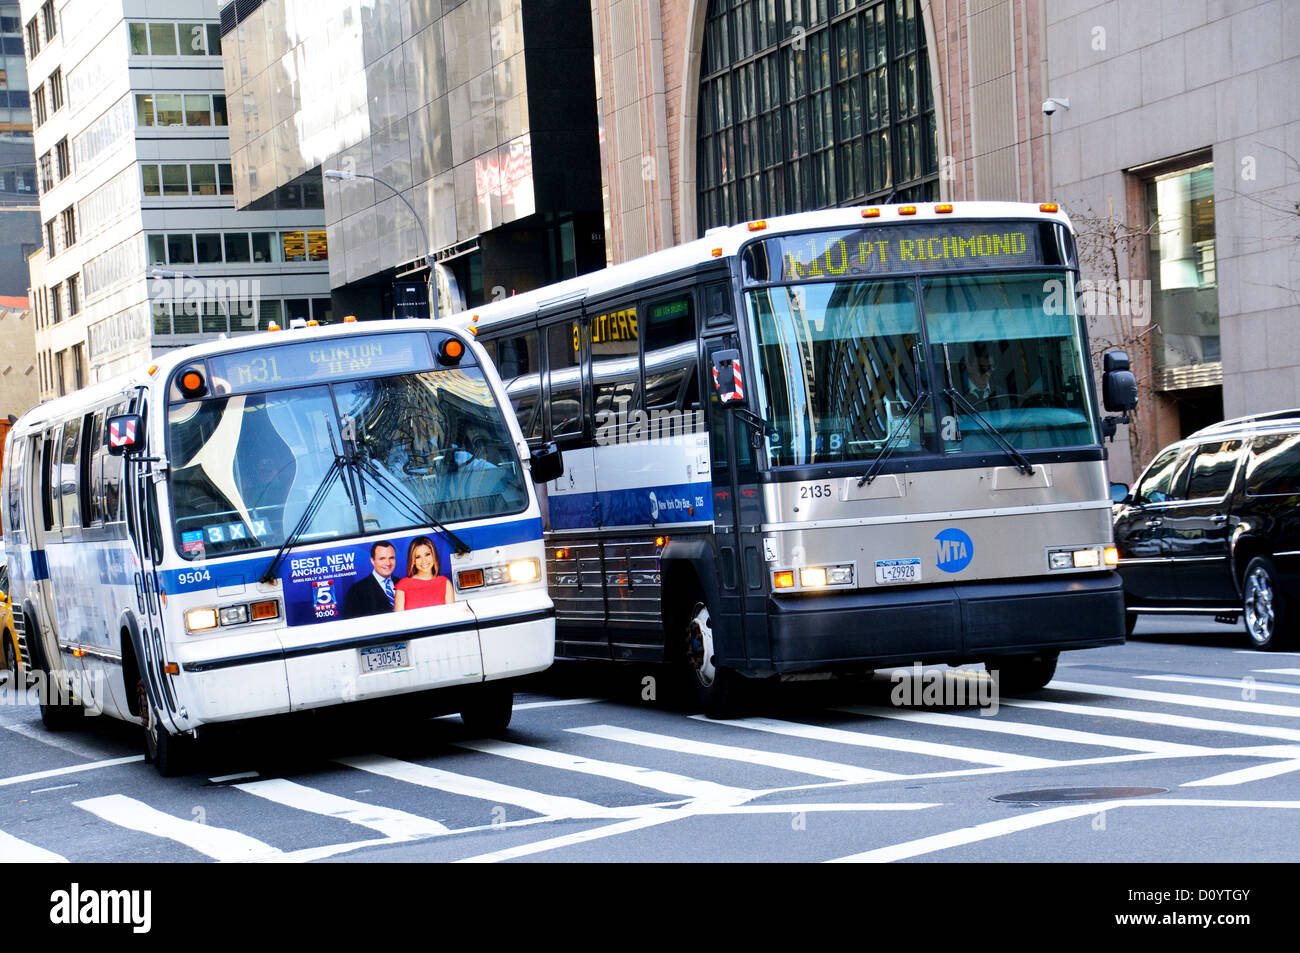 new york city transit analysis New york city transit has requested an analysis considering changing from the current fleet of buses to electric buses nyc transit and mta bus have a combined fleet of about 5,700 buses.